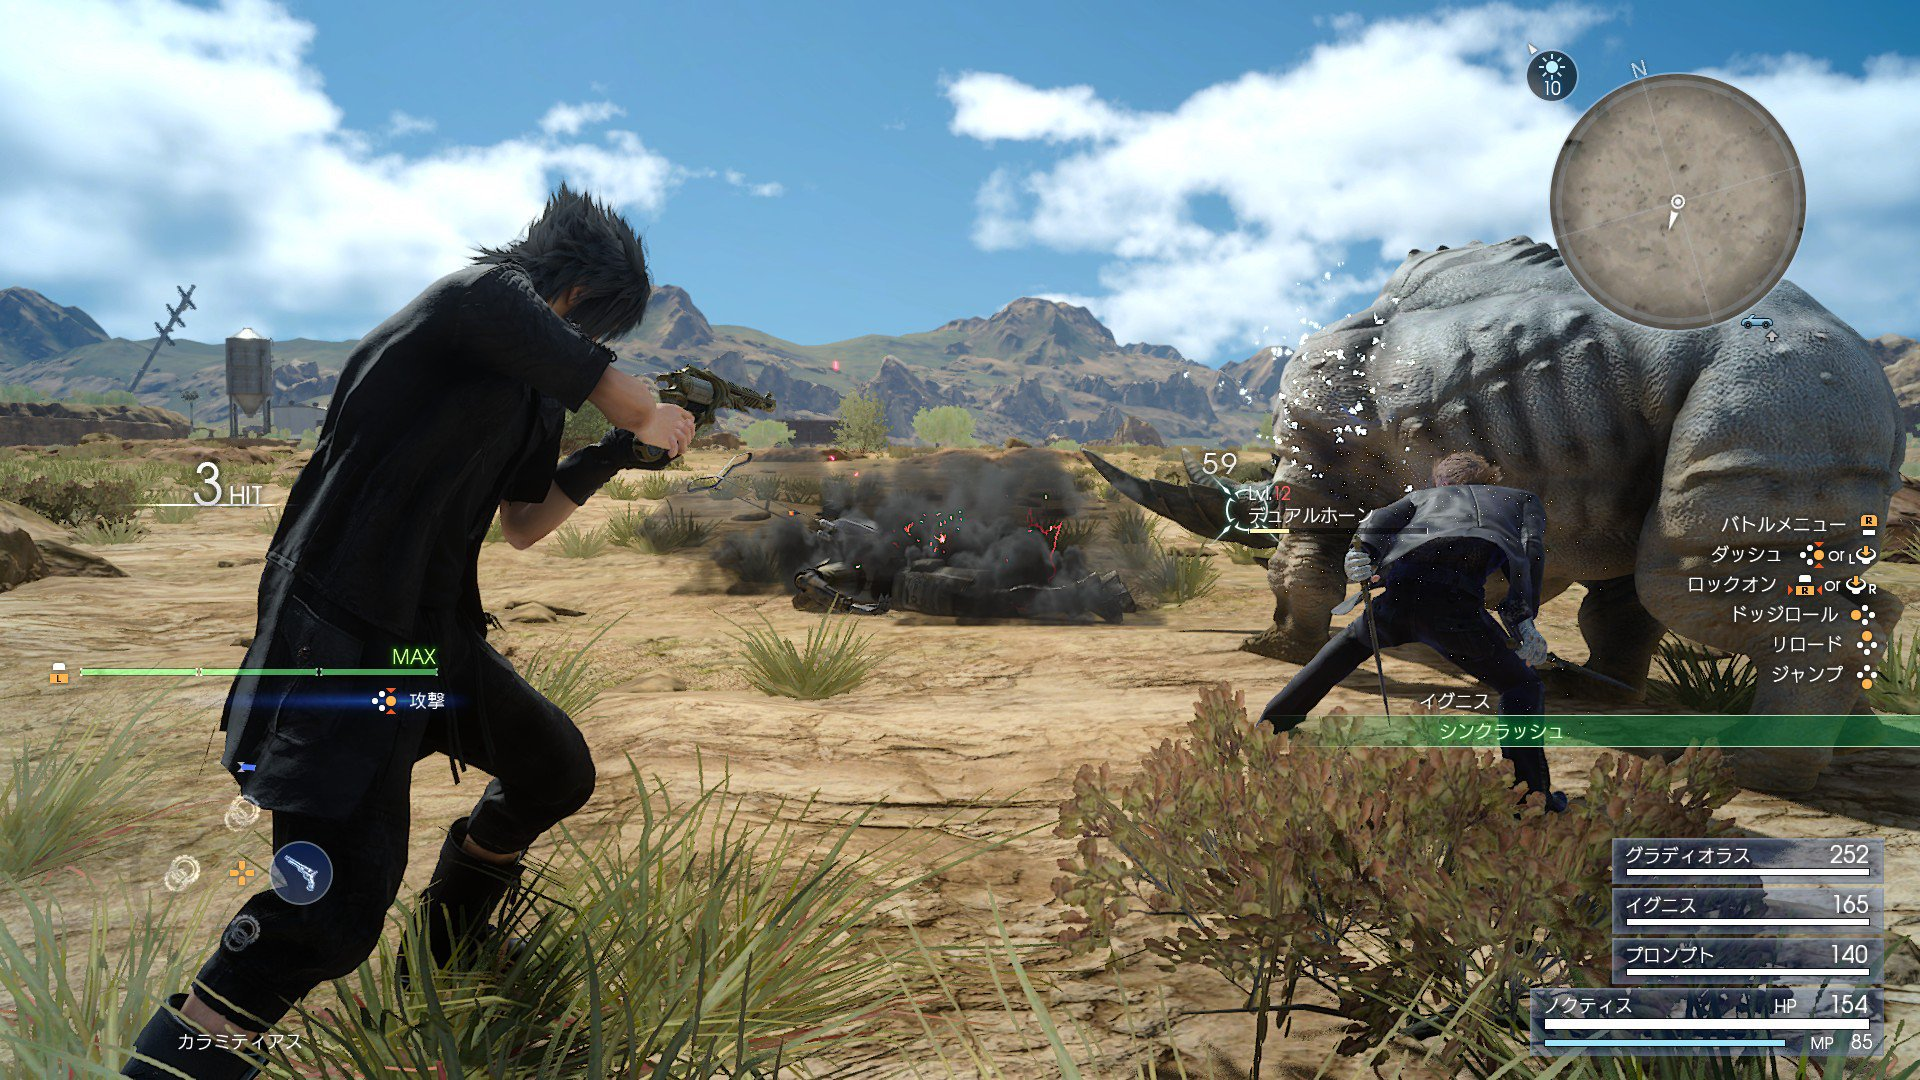 Final Fantasy 15 At TwitchCon Showcases New Gameplay And Two New Promotional Xbox One Consoles